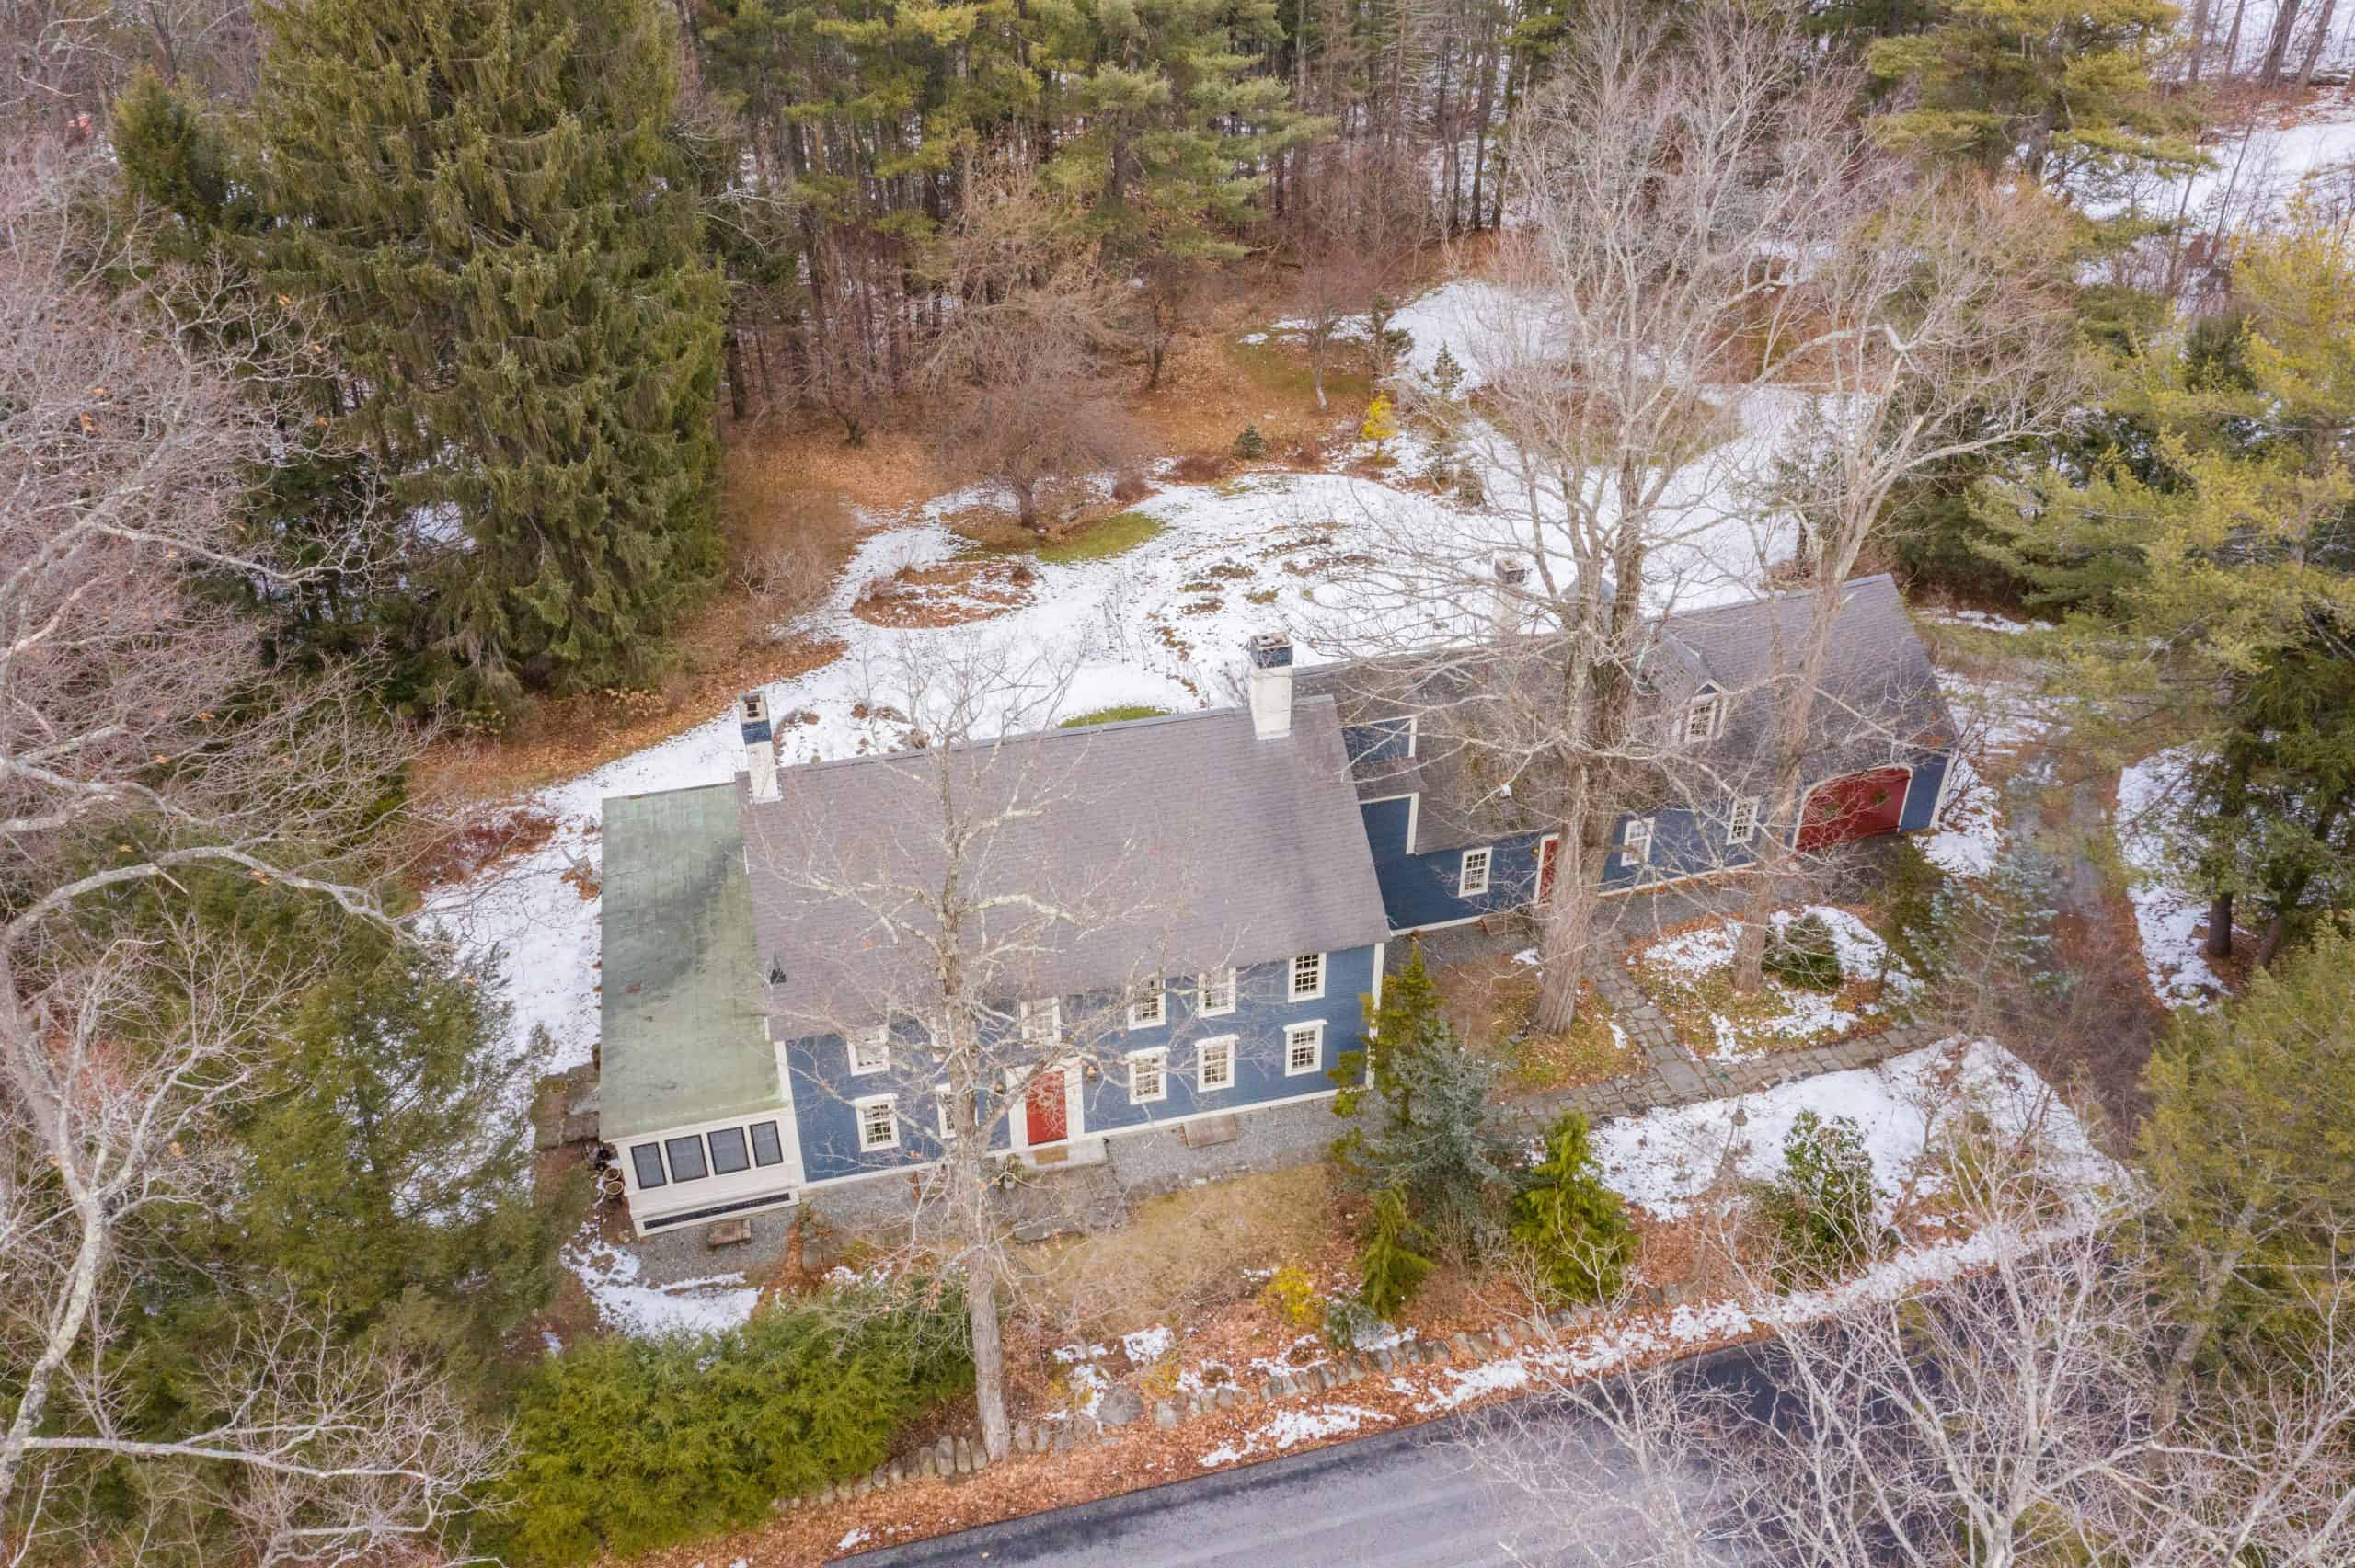 49 King Rd. New Ipswich, NH